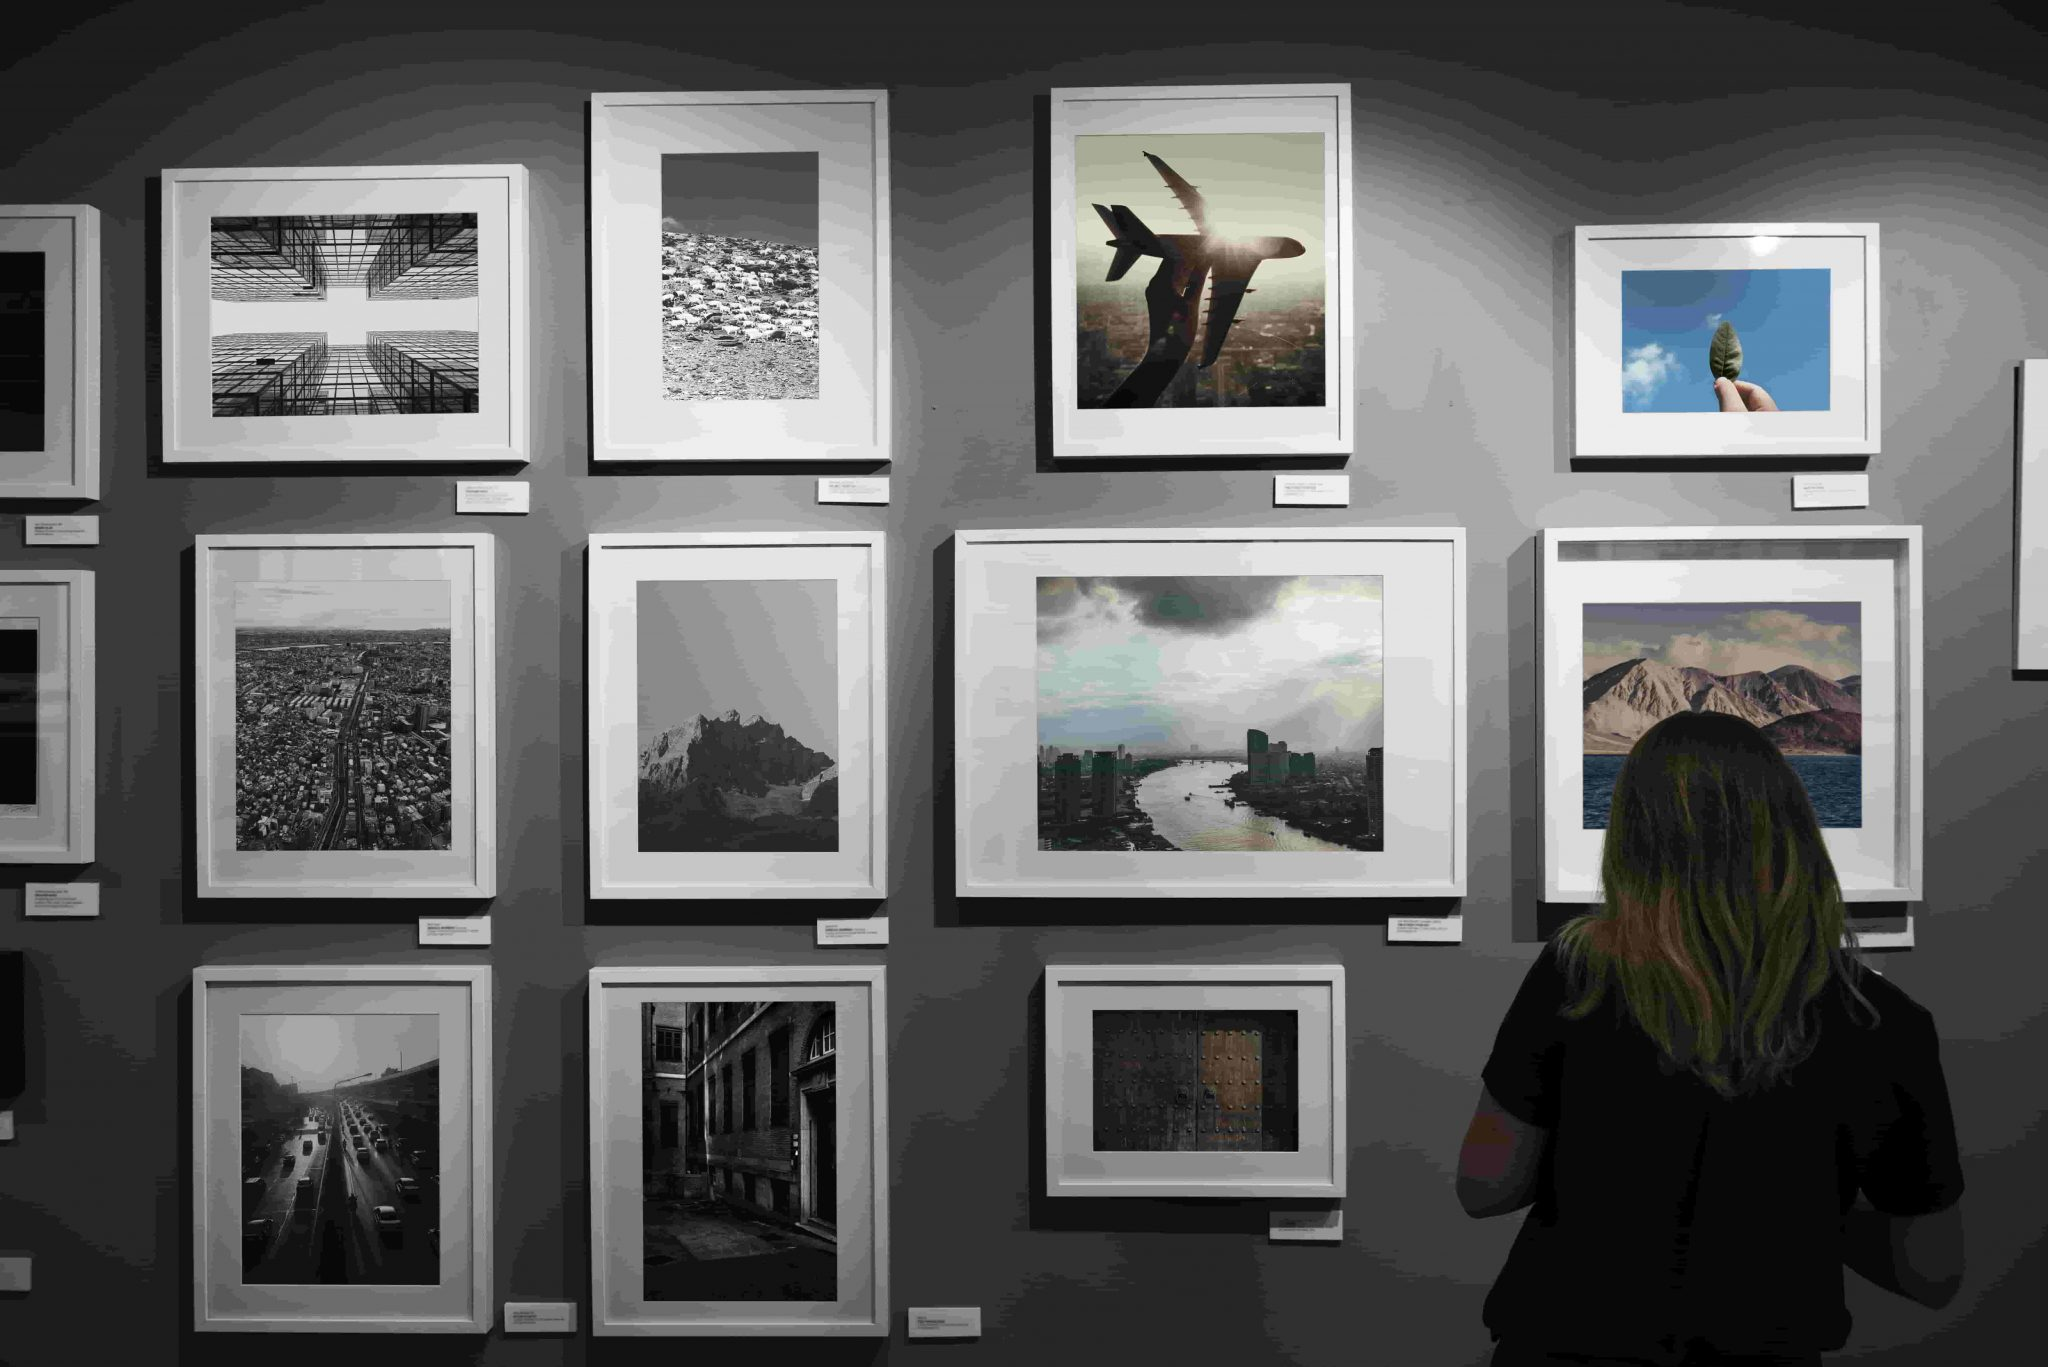 How to set up an art exhibition